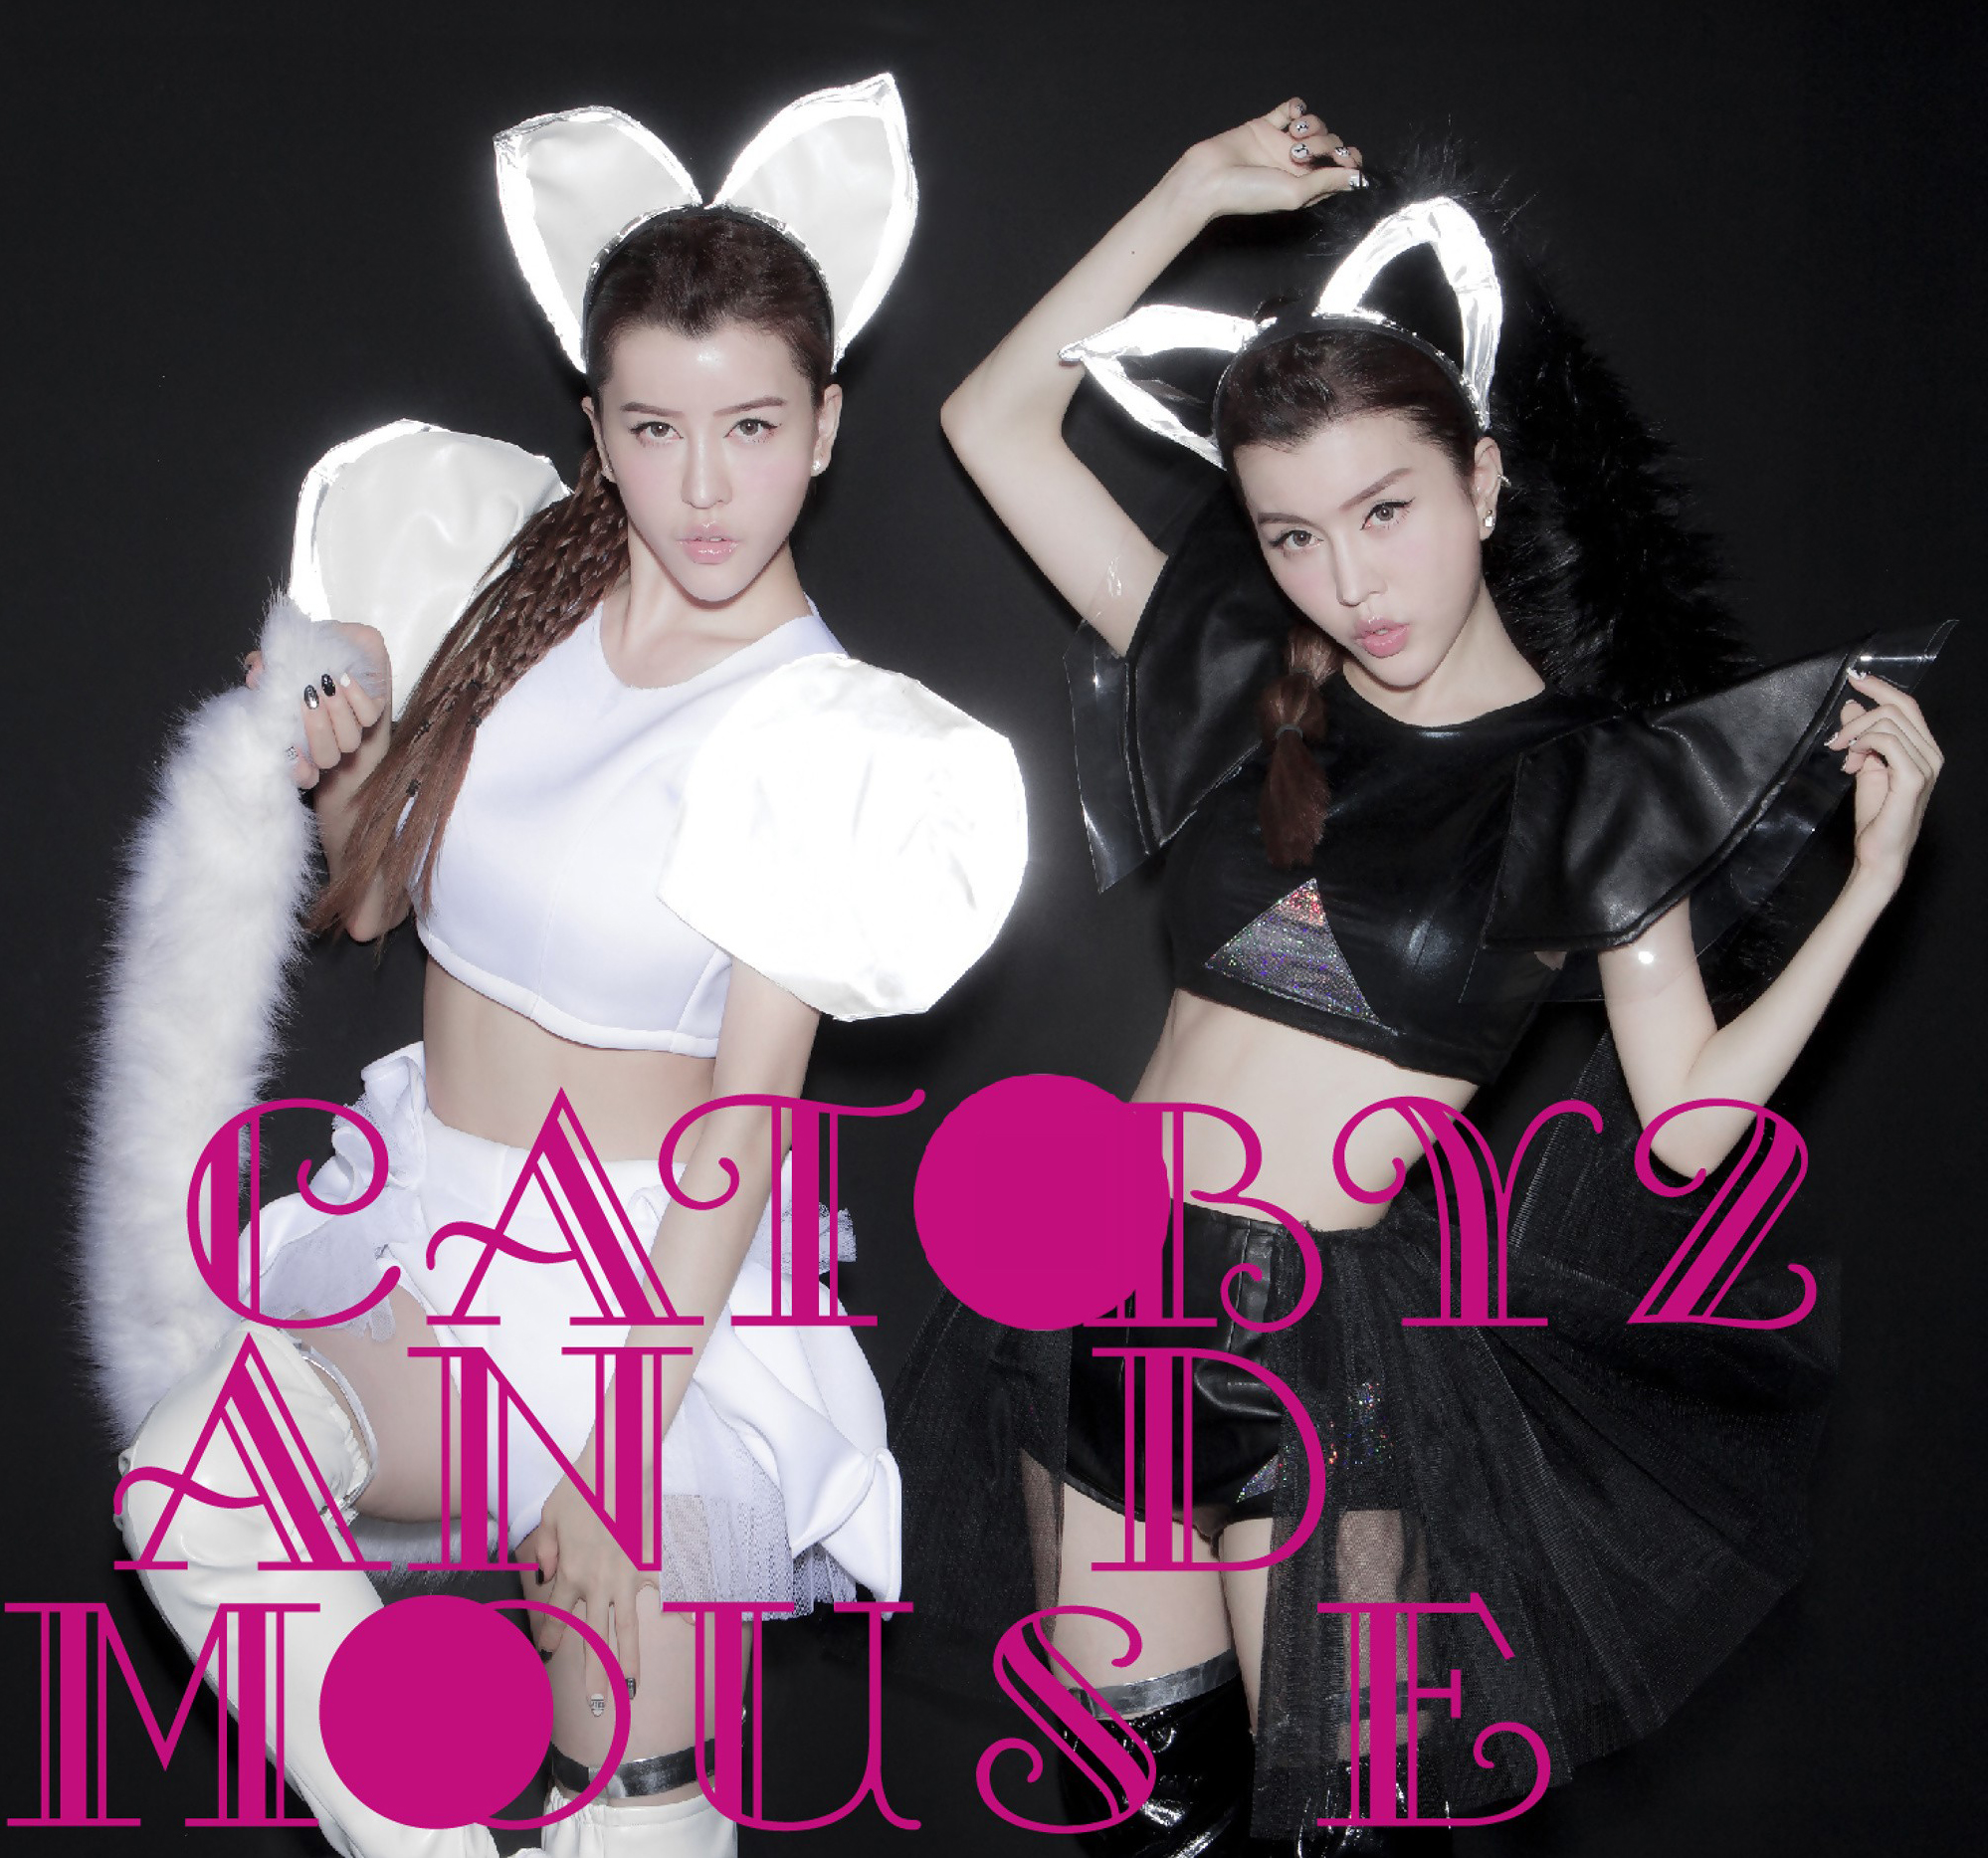 20161117.03.49 BY2 - Cat and Mouse cover 2.jpg